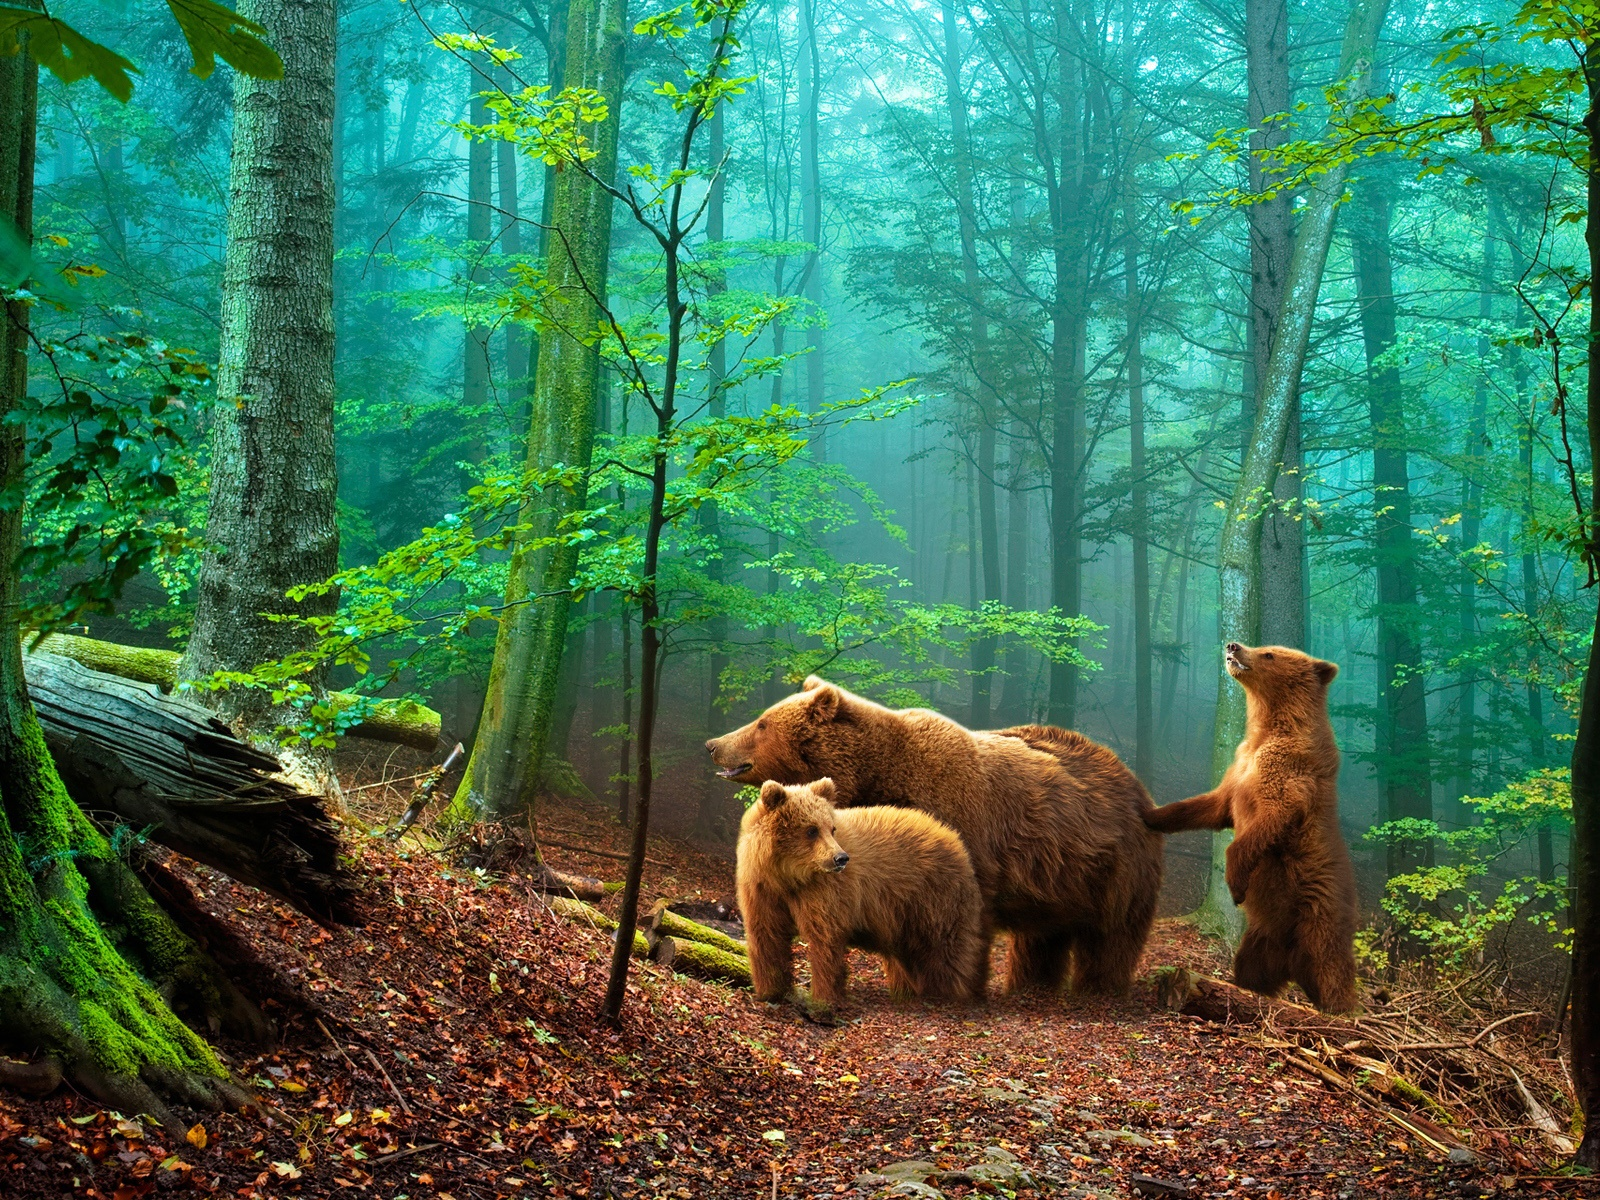 Brown bears in the forest wallpaper - 1600x1200